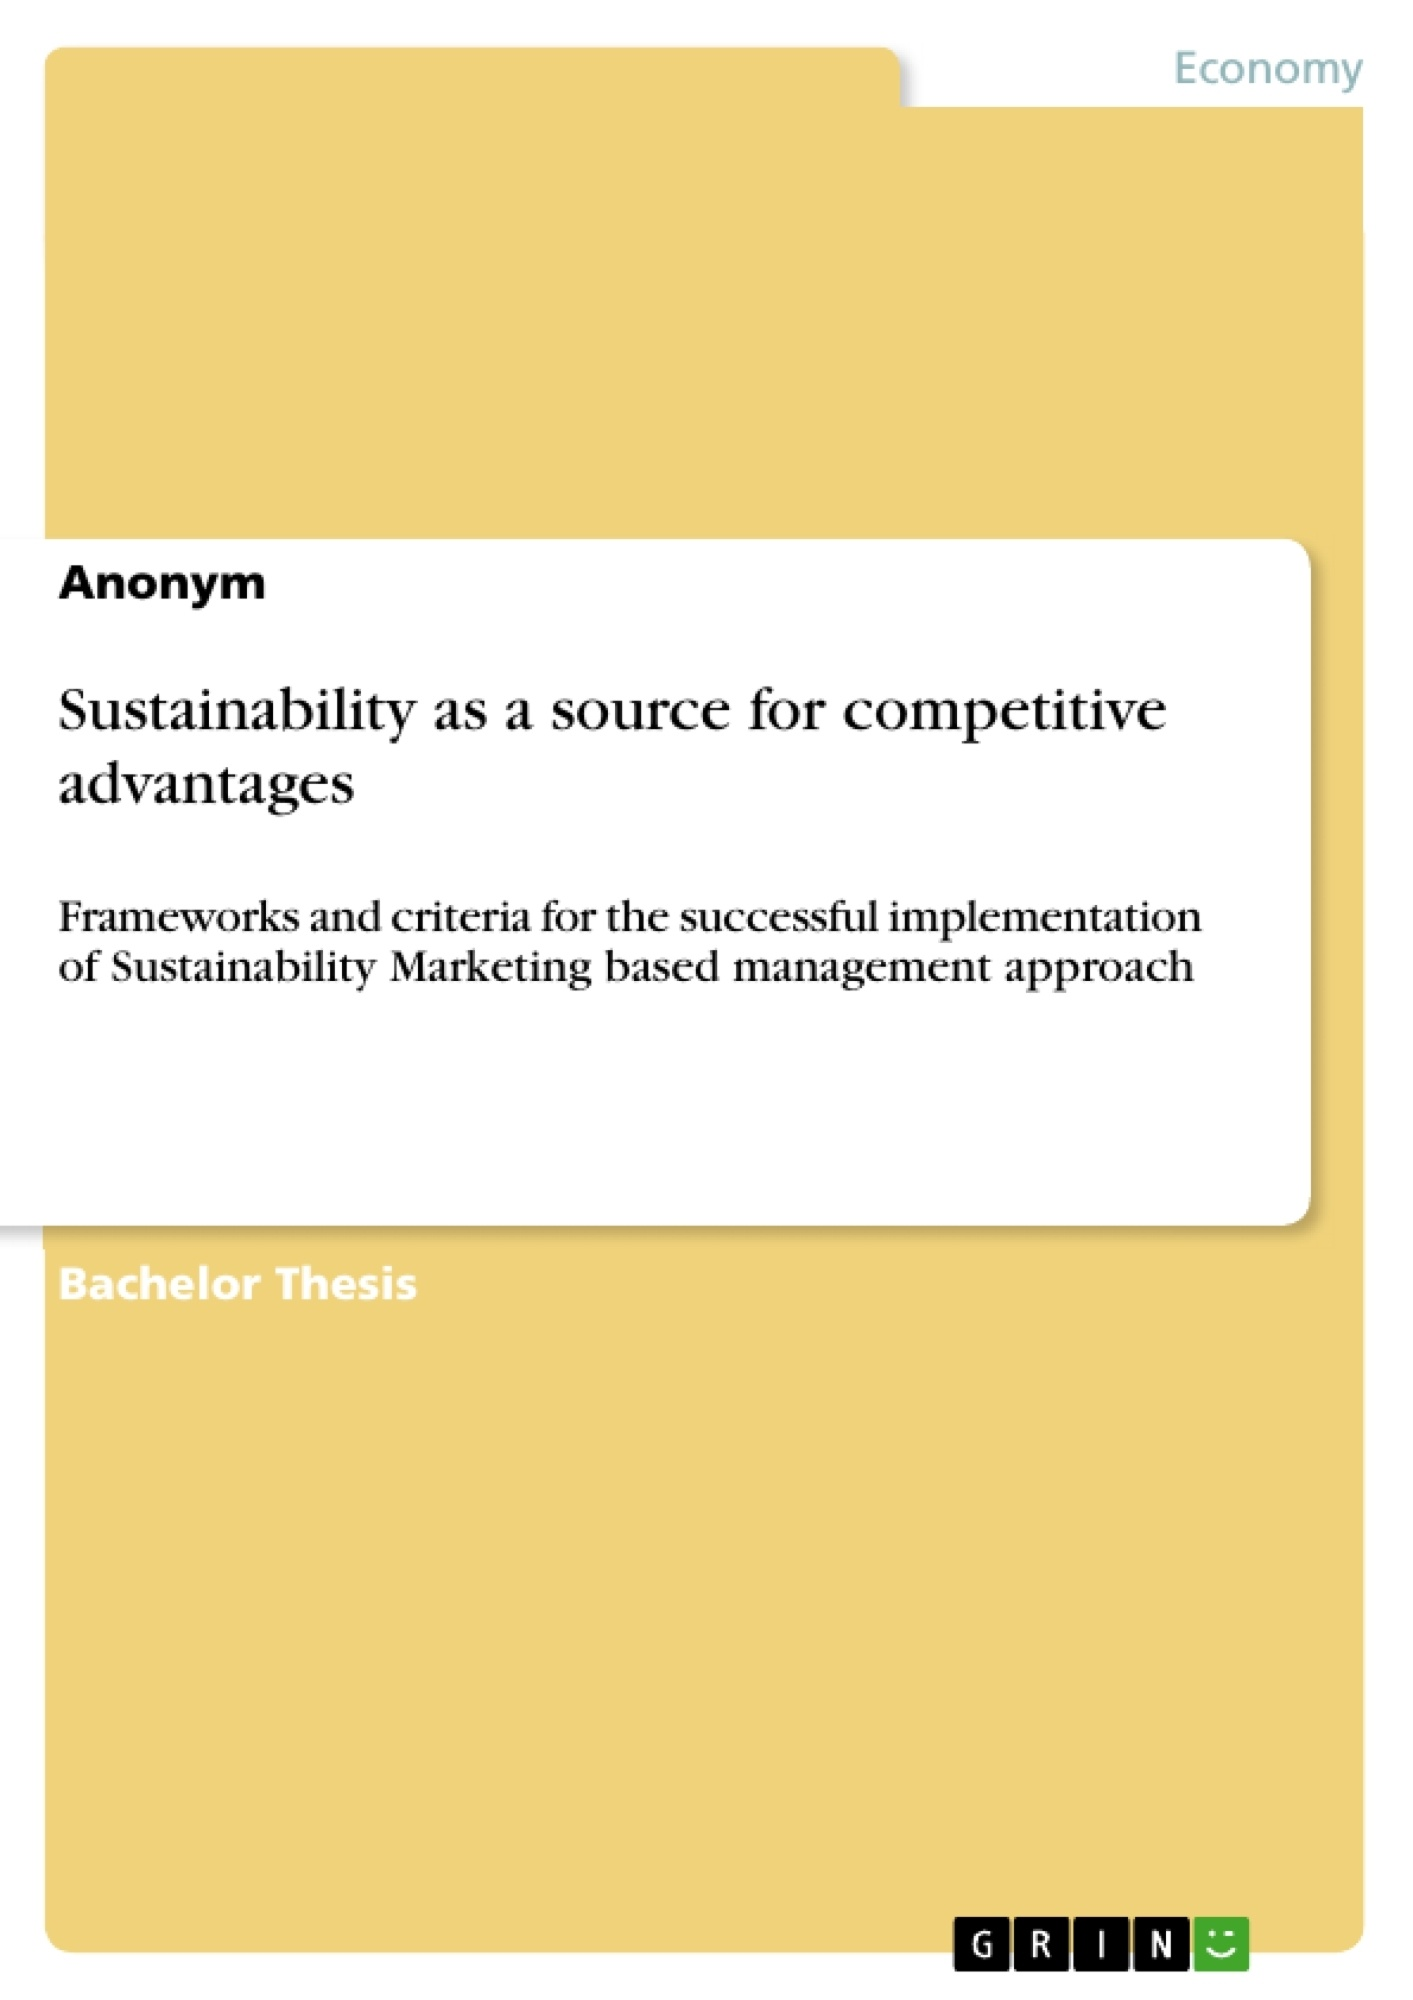 Title: Sustainability as a source for competitive advantages